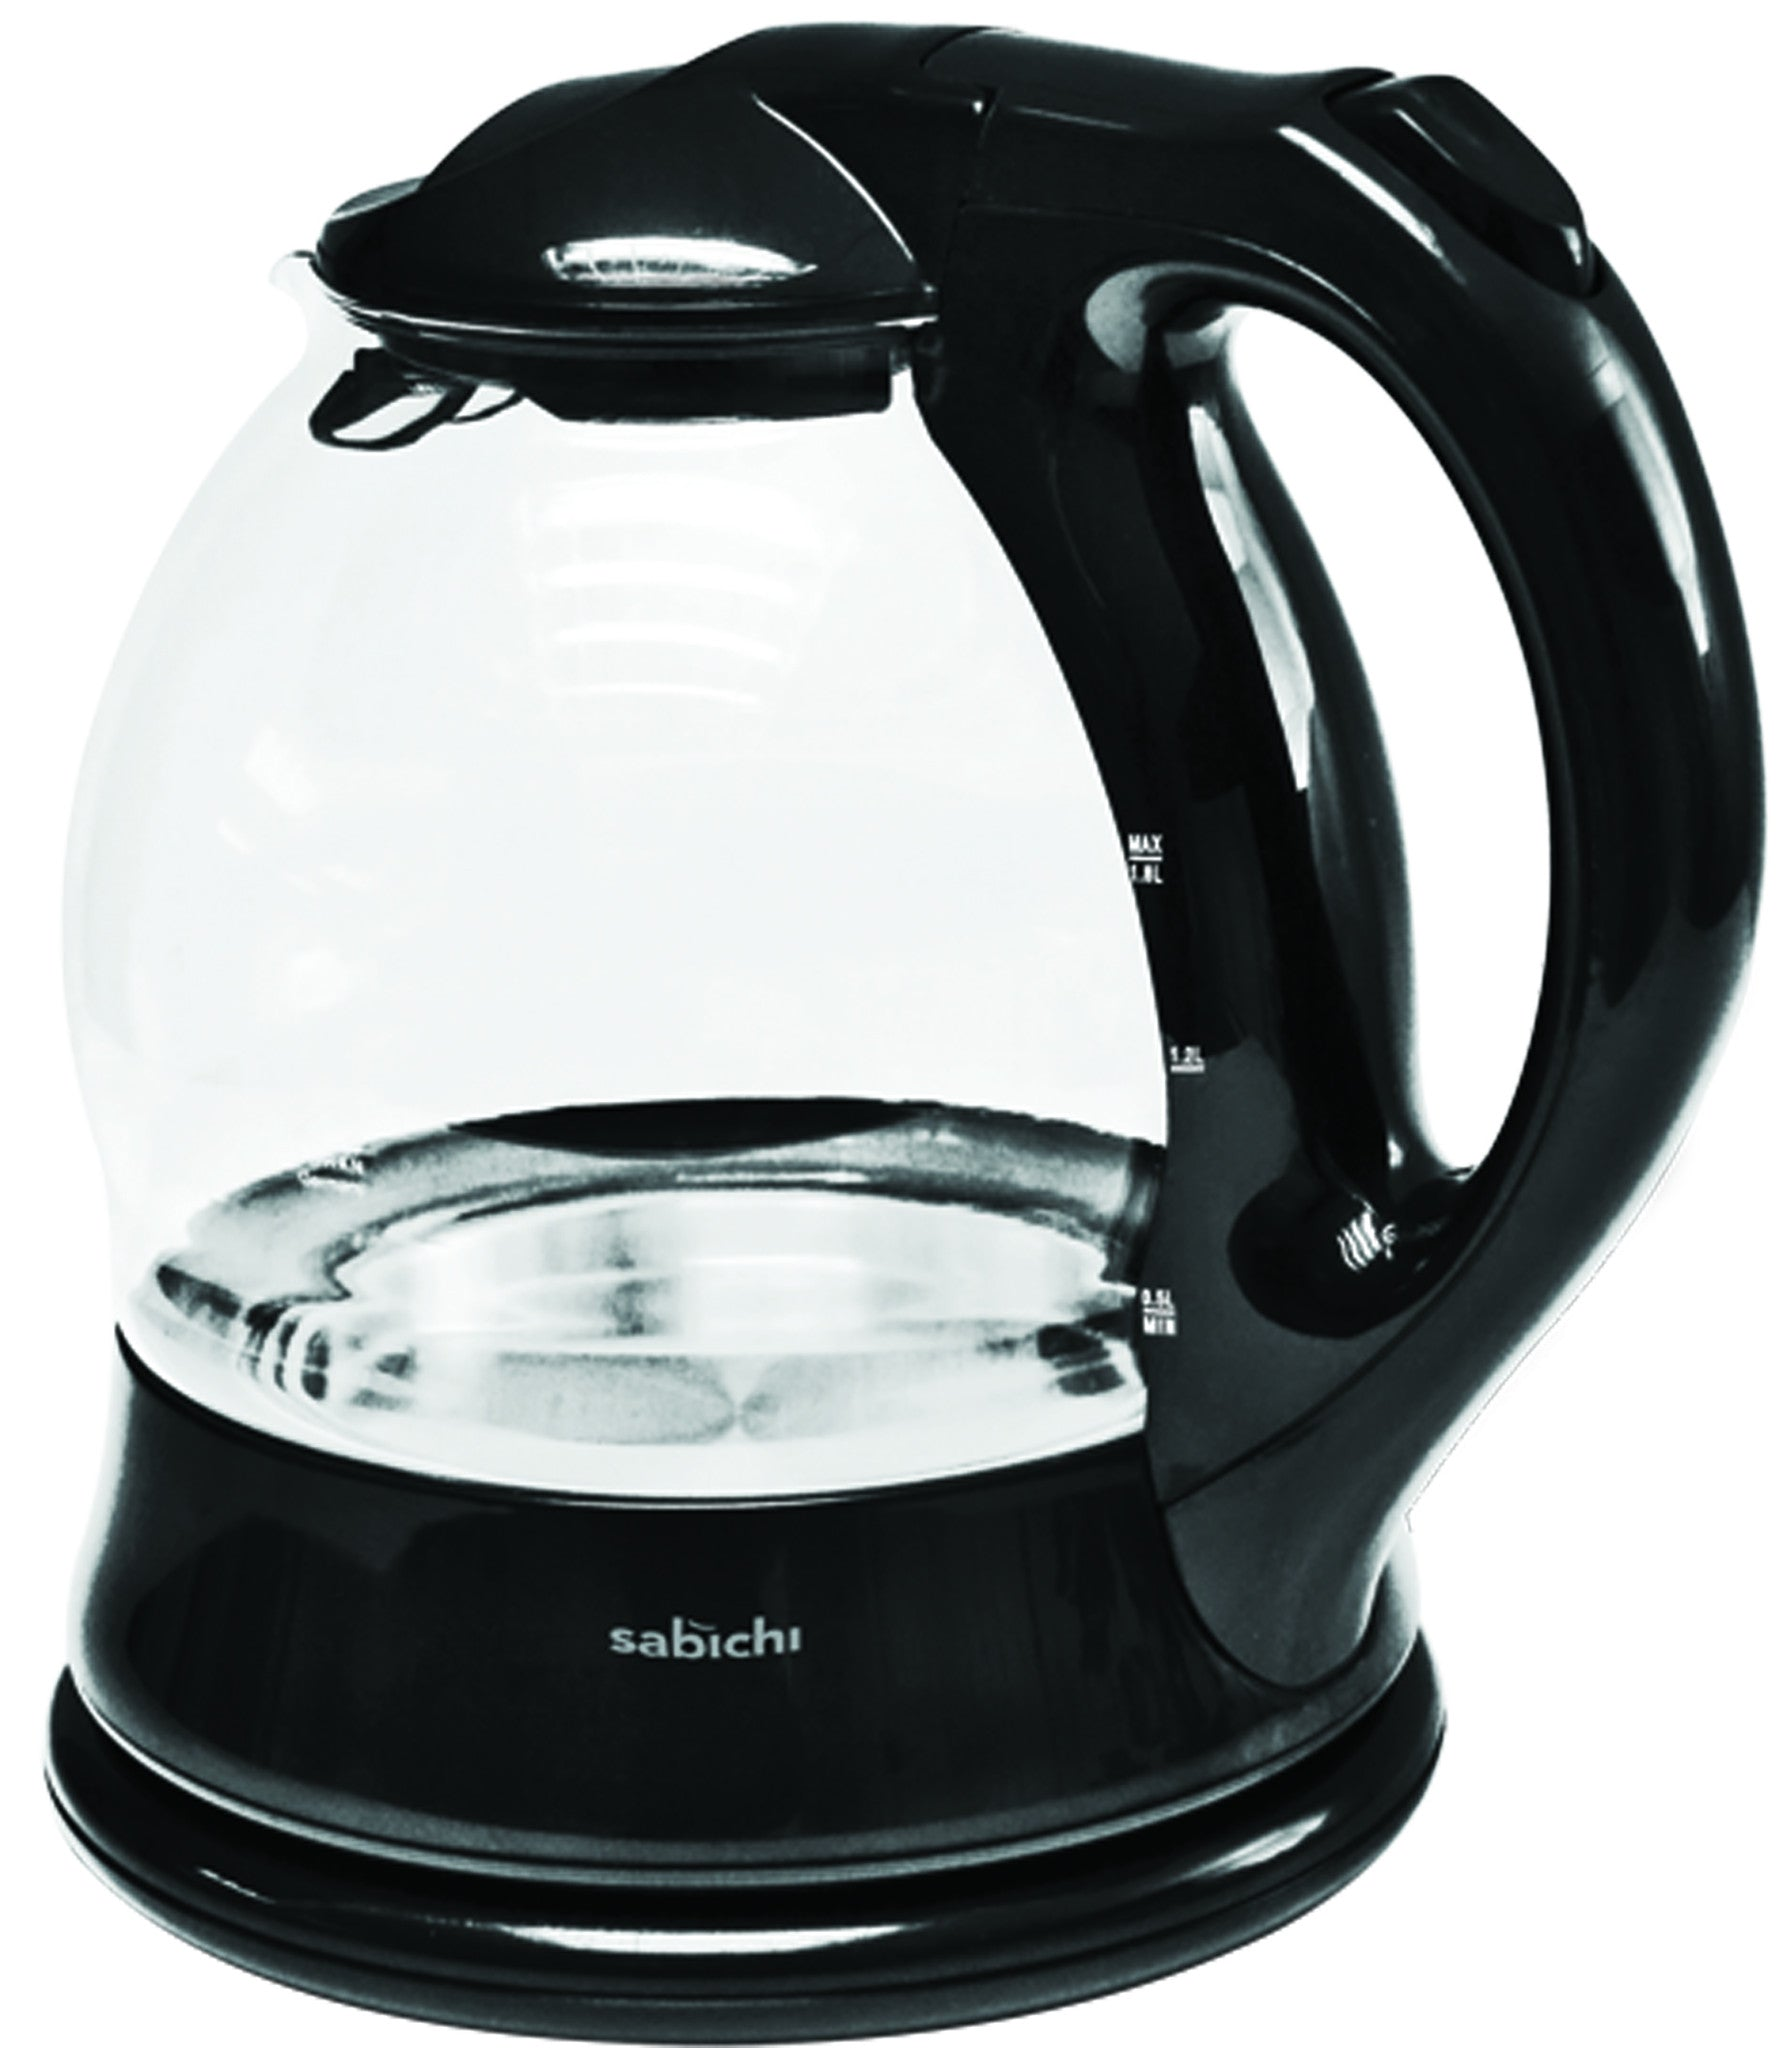 Sabichi 1.8ltr Glass Kettle-95121 - Homely Nigeria